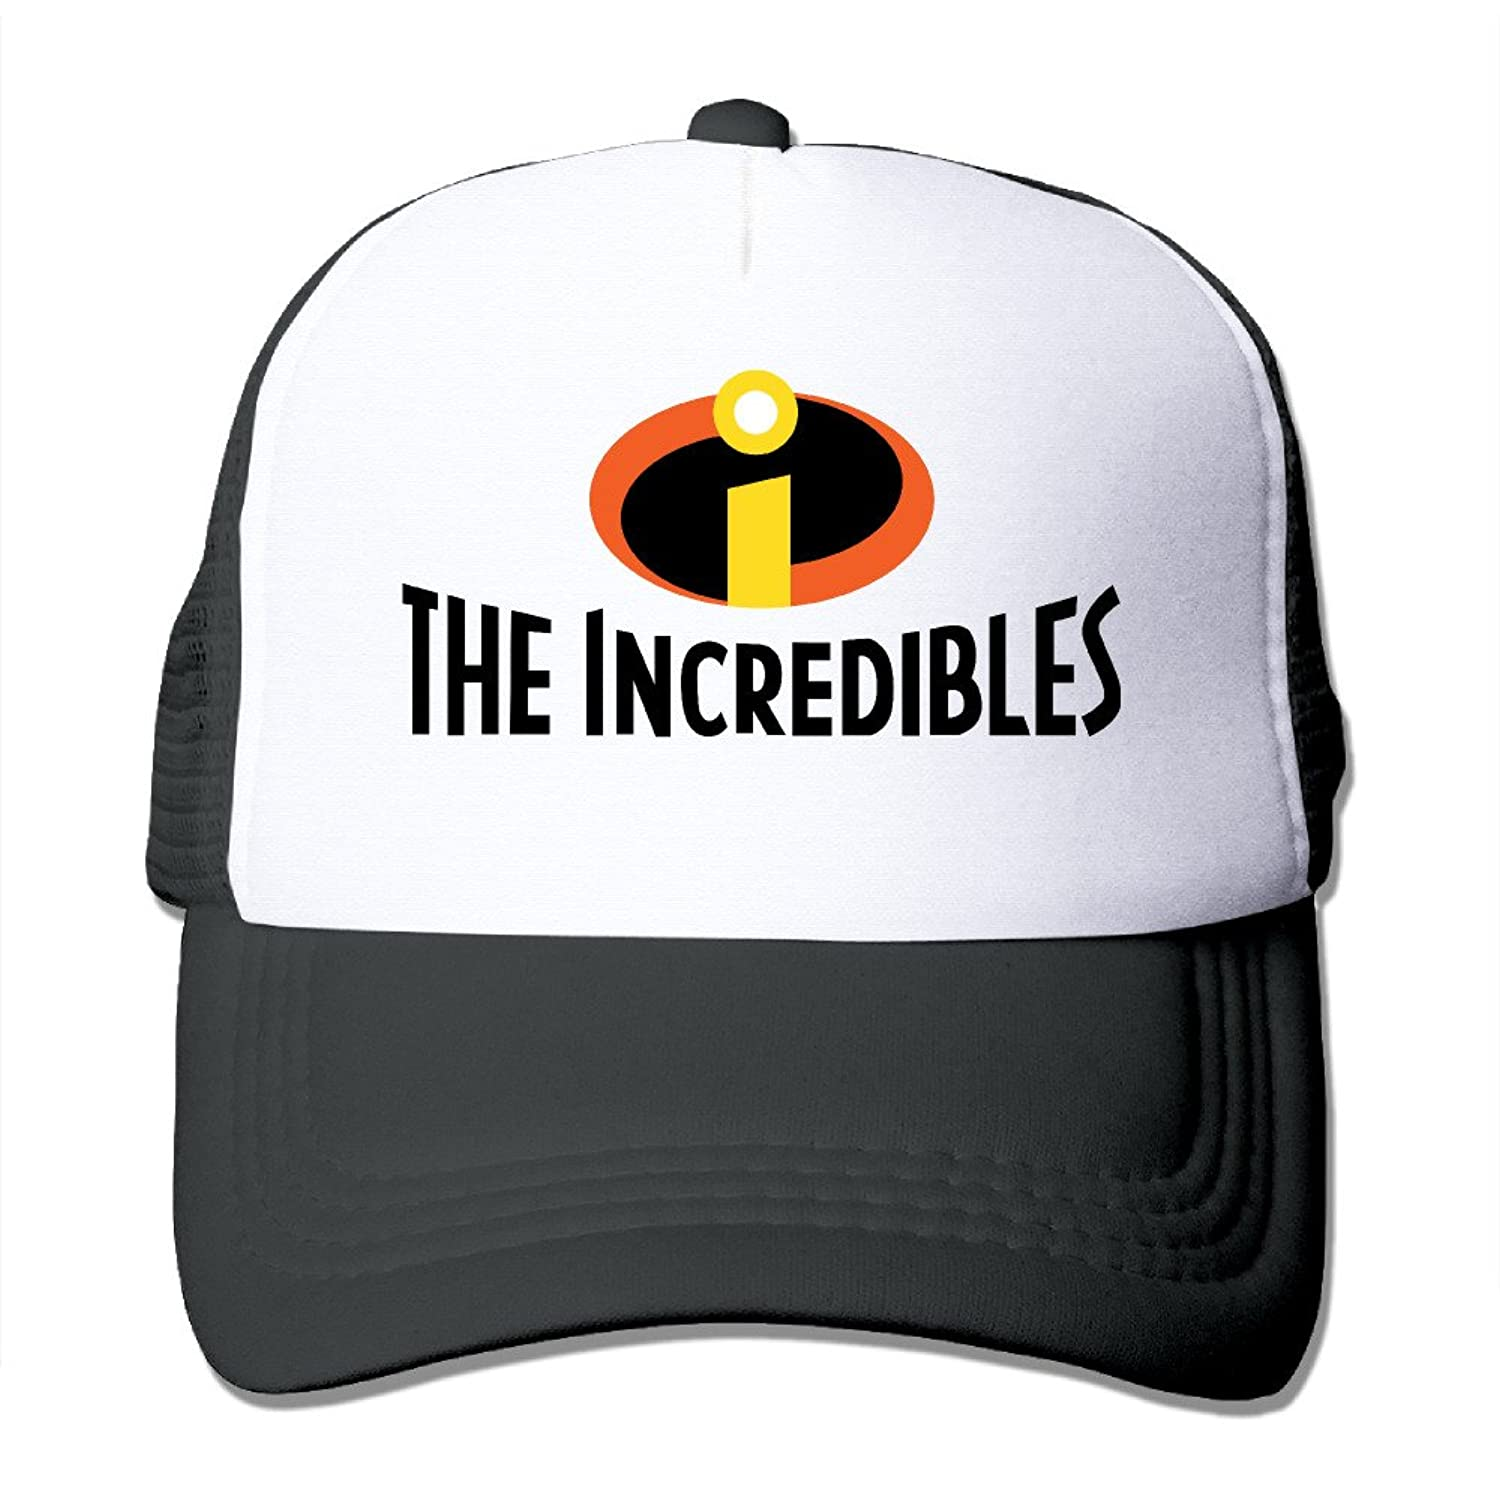 Zengbaba Unisex The Incredibles Logo Adjustable Mesh Baseball Hats Caps